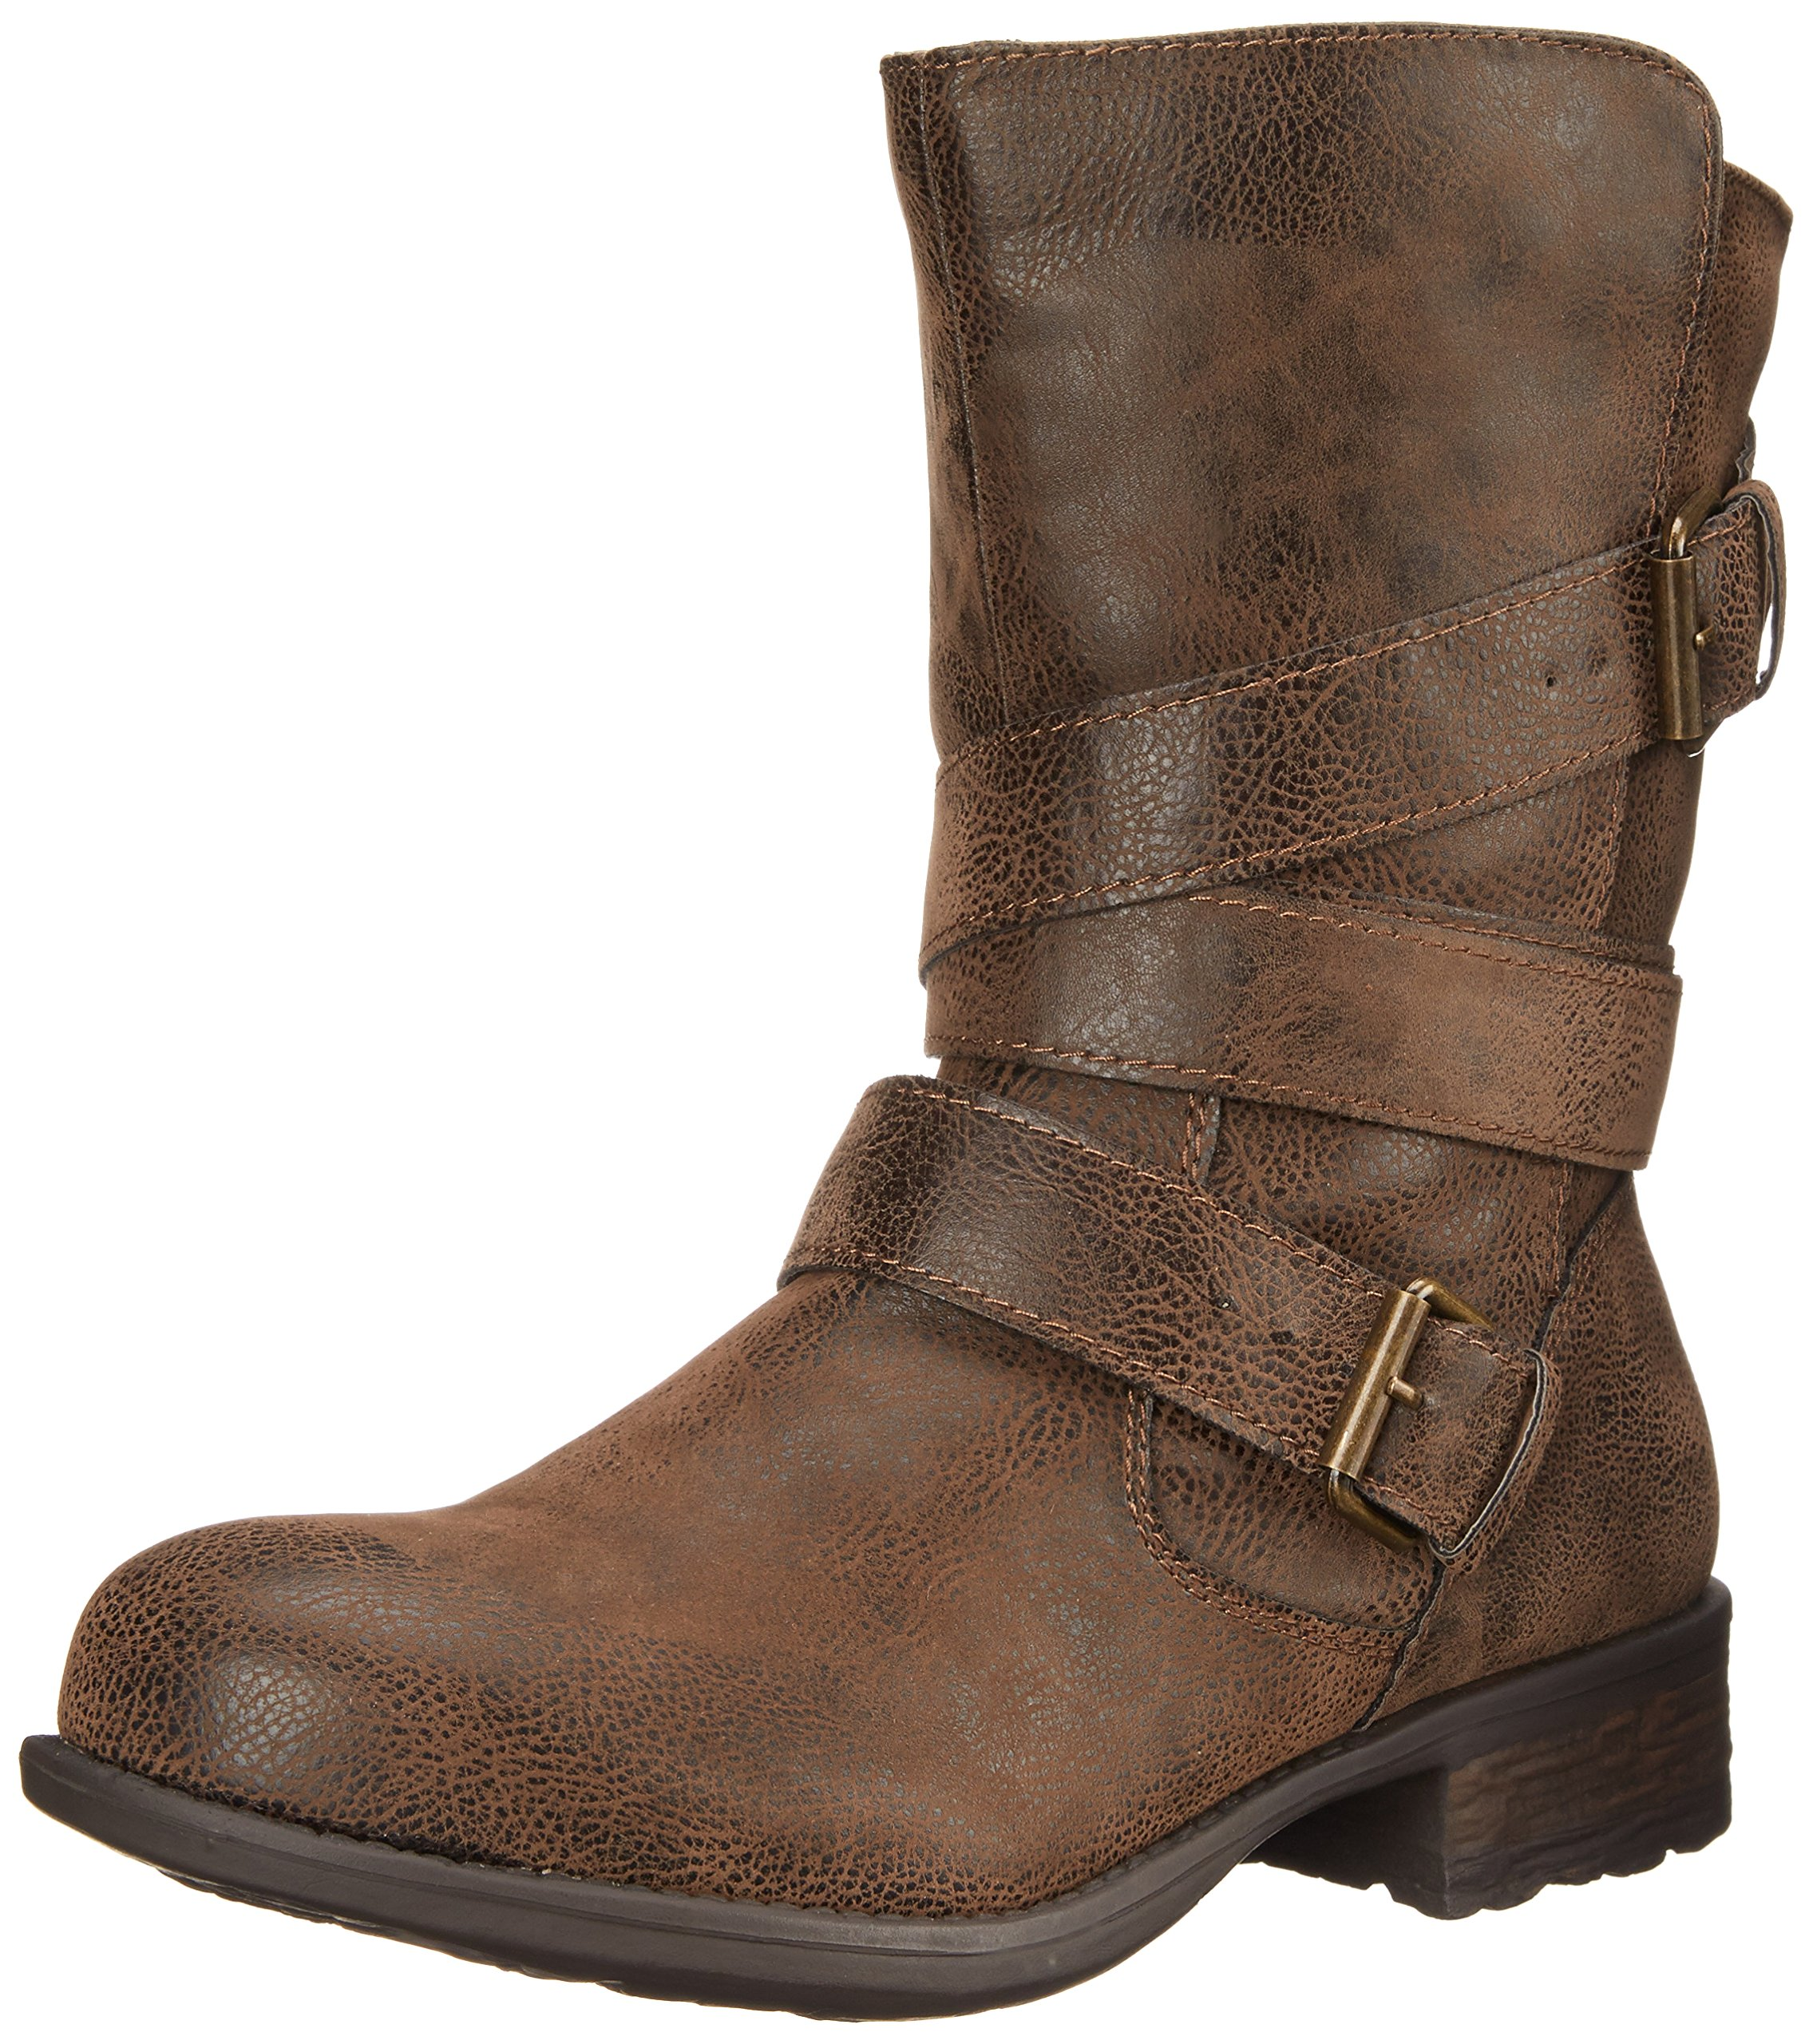 Rampage Women's Islet Motorcycle Buckle Mid Calf Low Heel Boot, Brown, 8.5 M US